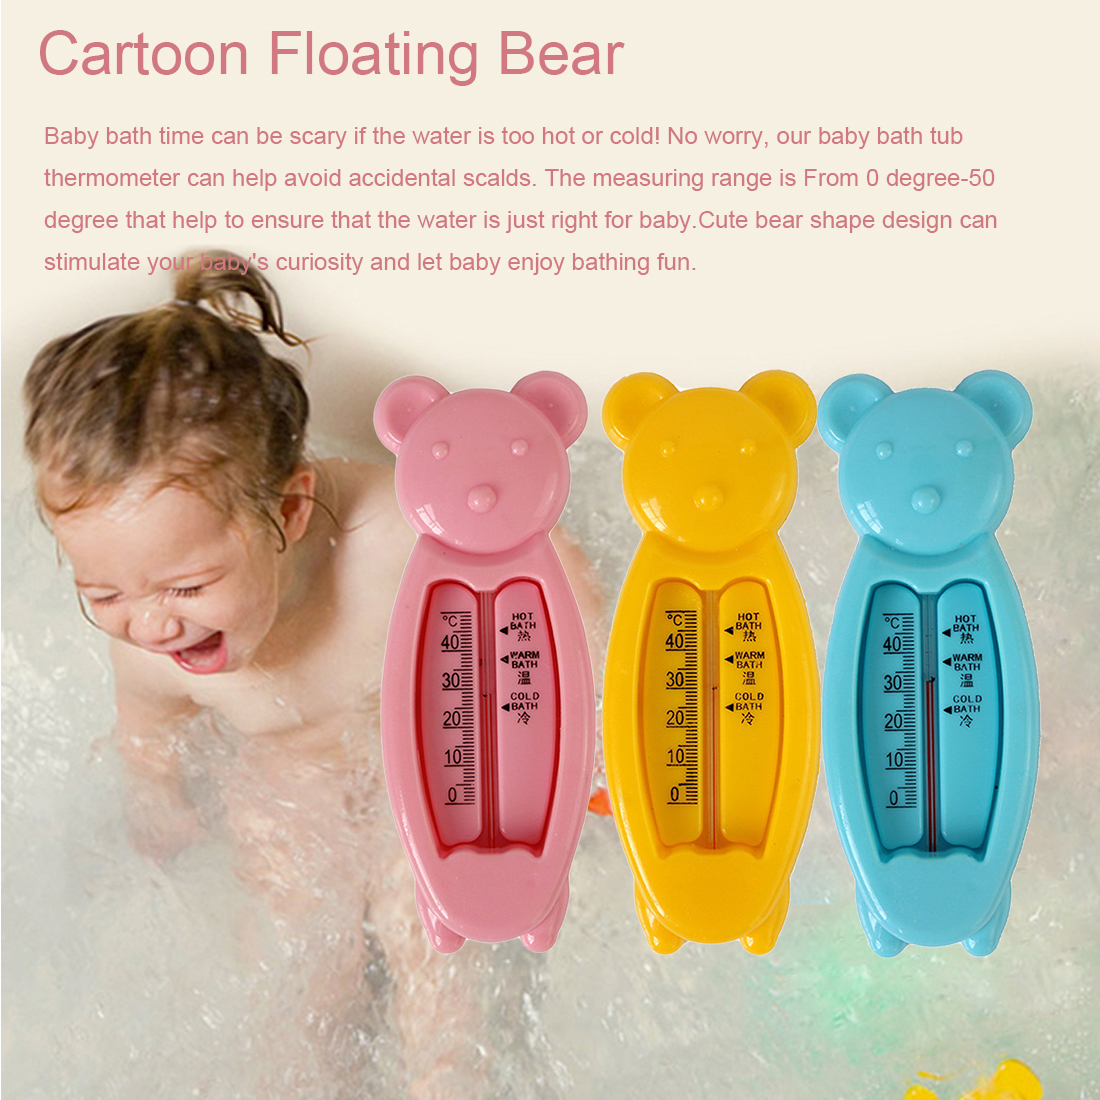 Lovely Bear Baby Bath Water Thermometer Tub Kids Bath Temperature Water Tester Kids Toy Room Water SensorLovely Bear Baby Bath Water Thermometer Tub Kids Bath Temperature Water Tester Kids Toy Room Water Sensor